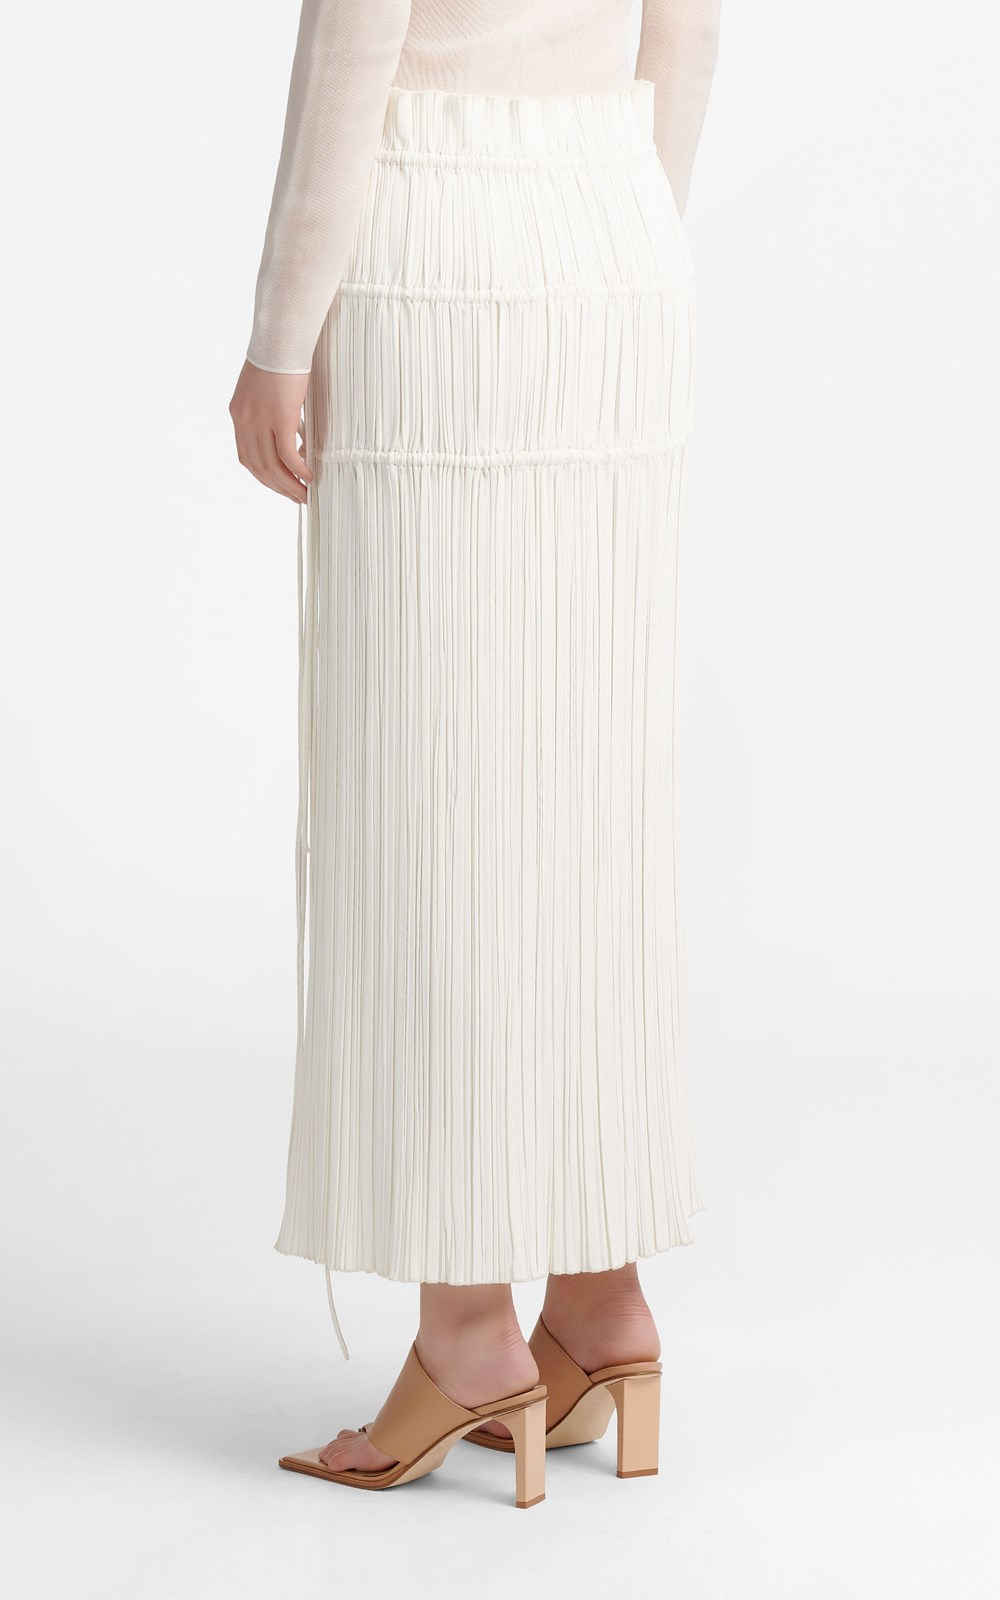 Skirts | CHANNEL PLEAT SKIRT